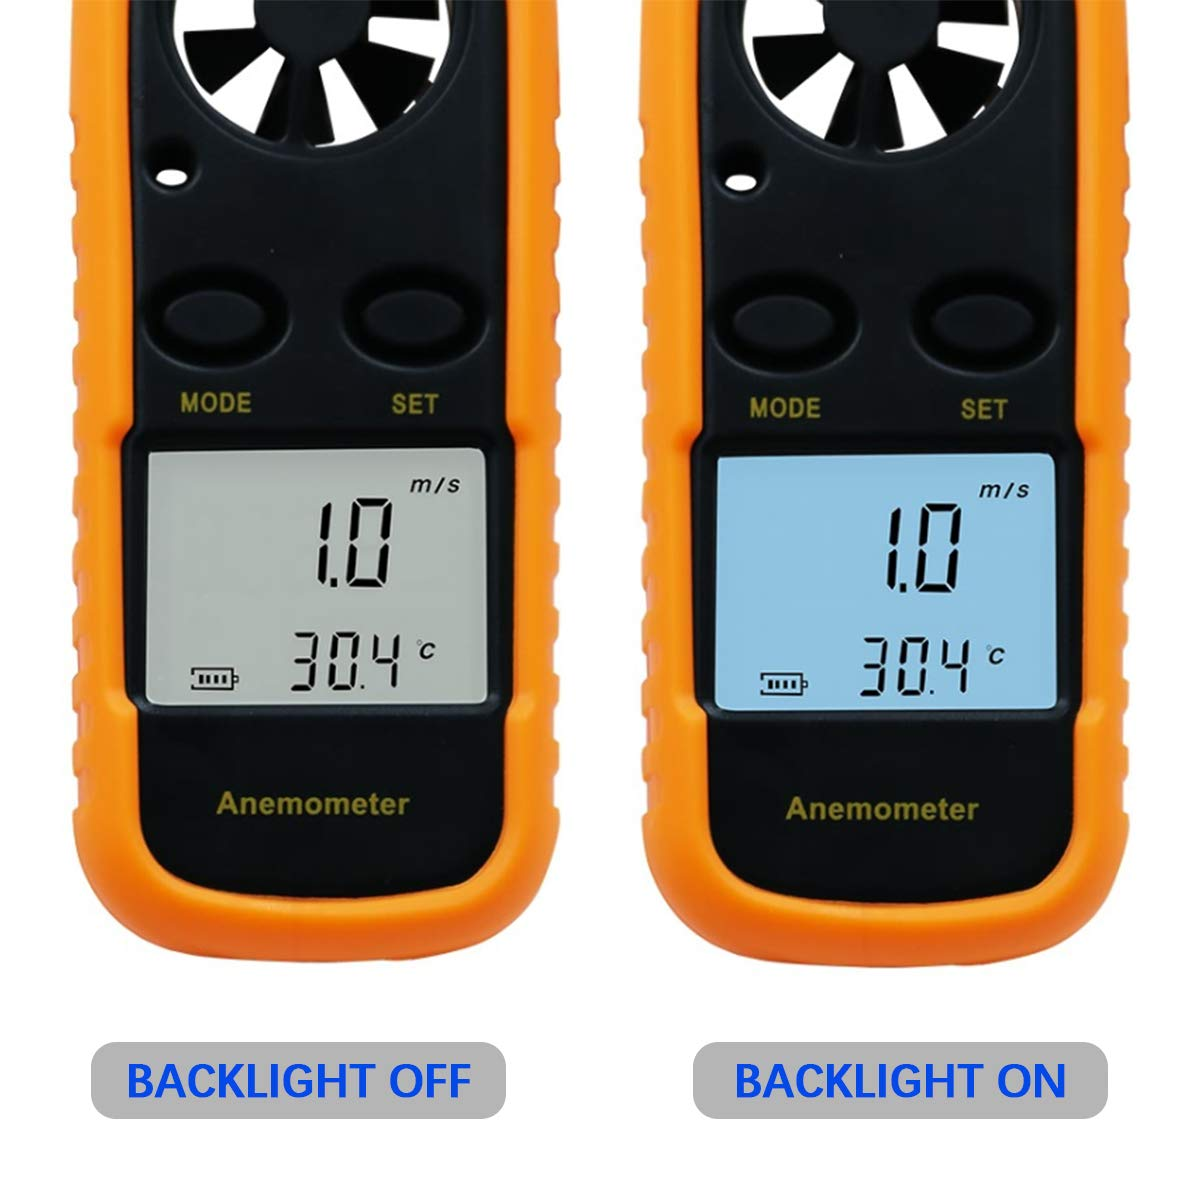 Anemometer Kite Flying Digital LCD Wind Speed Meter Gauge Air Flow Velocity Measurement Thermometer with Backlight for Windsurfing Surfing Fishing Etc,Battery Included Sailing